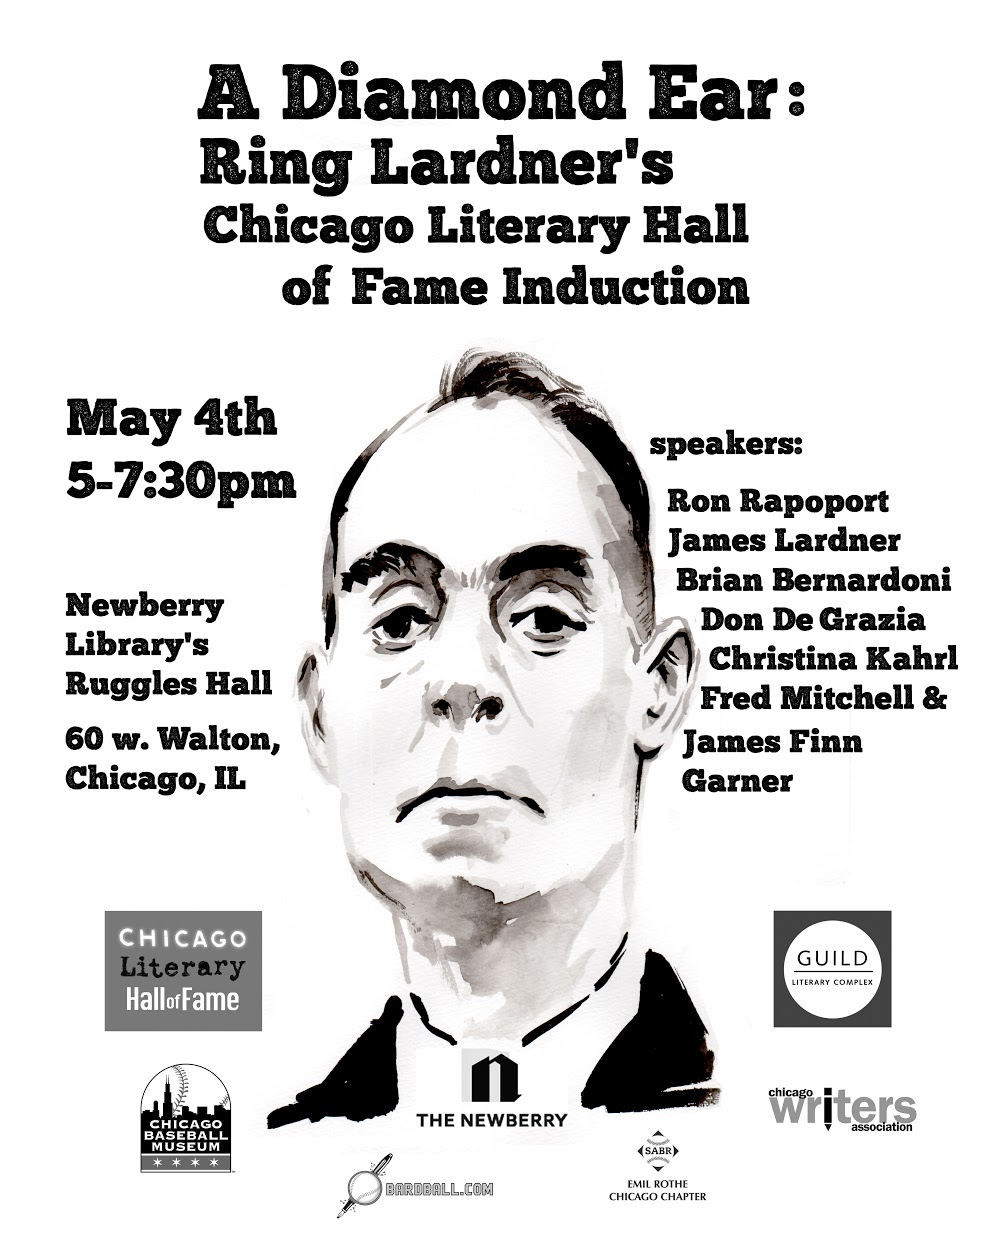 A Diamond Ear: Ring Lardner's Induction to the Chicago Literary Hall of Fame, Co-Sponsored by Newberry Library, Guild Literary Complex and more!